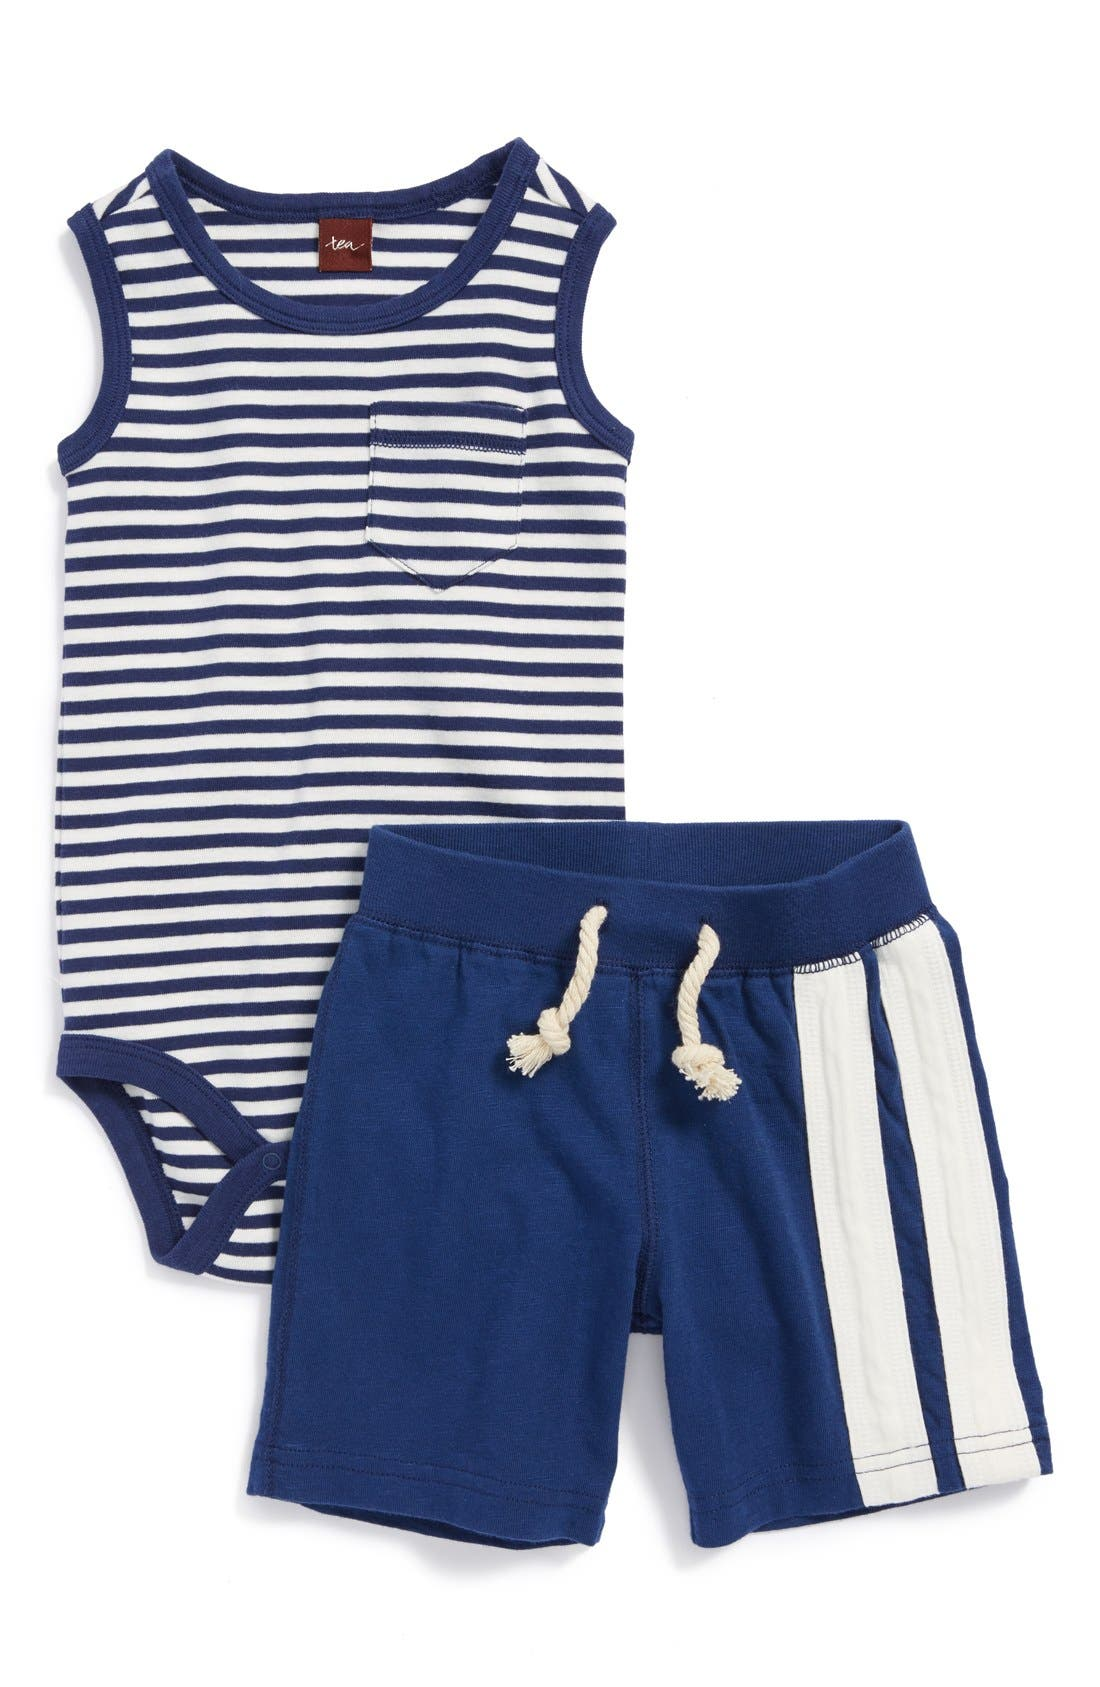 Alternate Image 1 Selected - Tea Collection Stripe Tank Bodysuit & Shorts (Baby Boys)